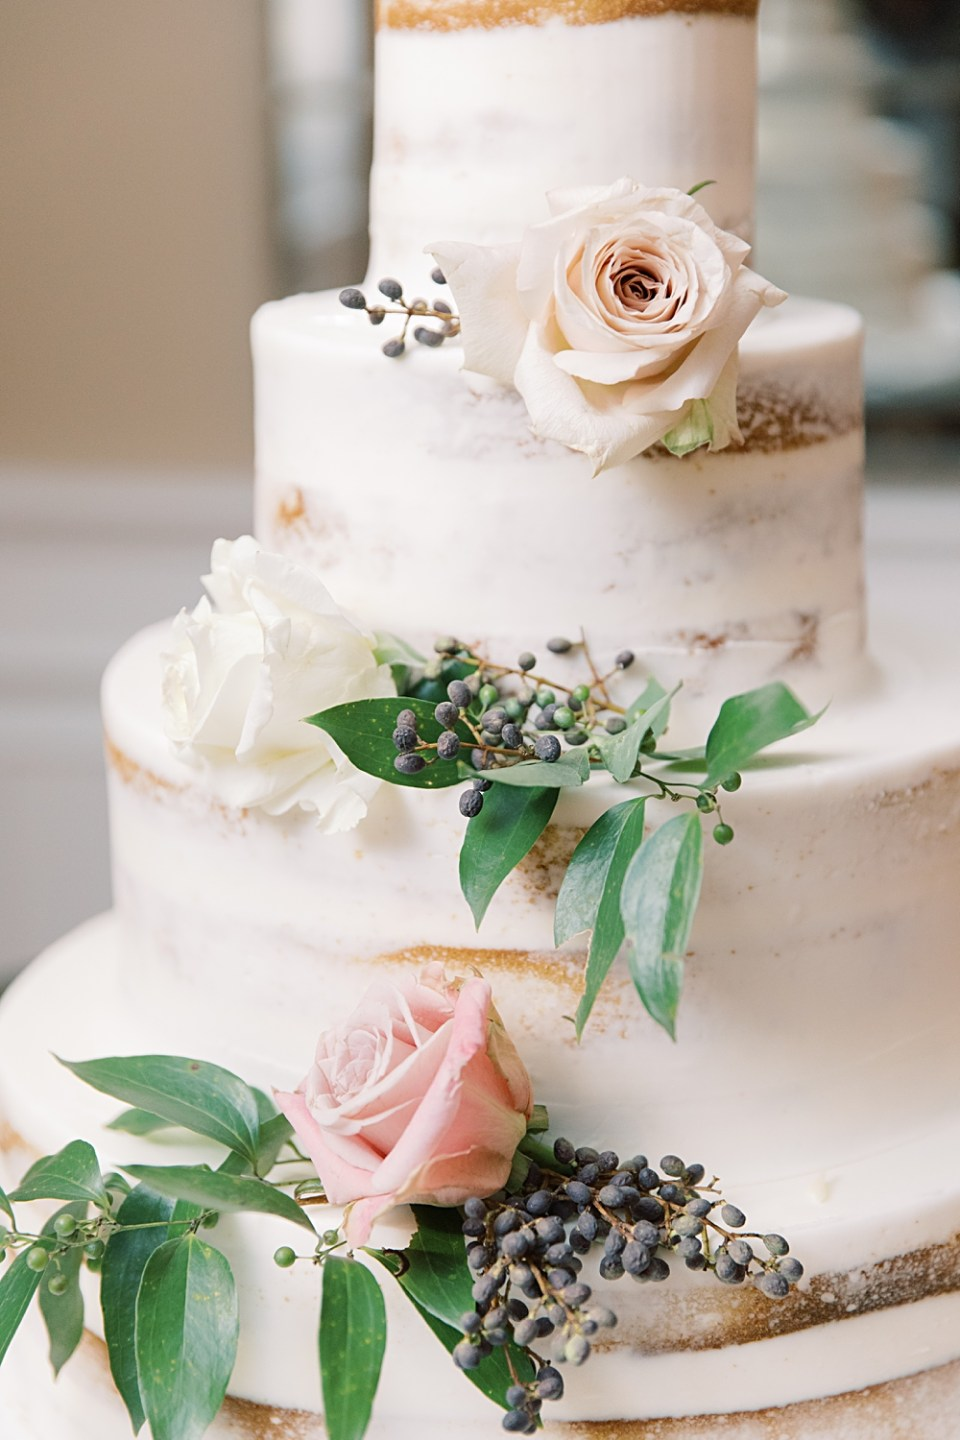 naked wedding cake with florals | palermos bakery | New Jersey Wedding Photographer Sarah Canning